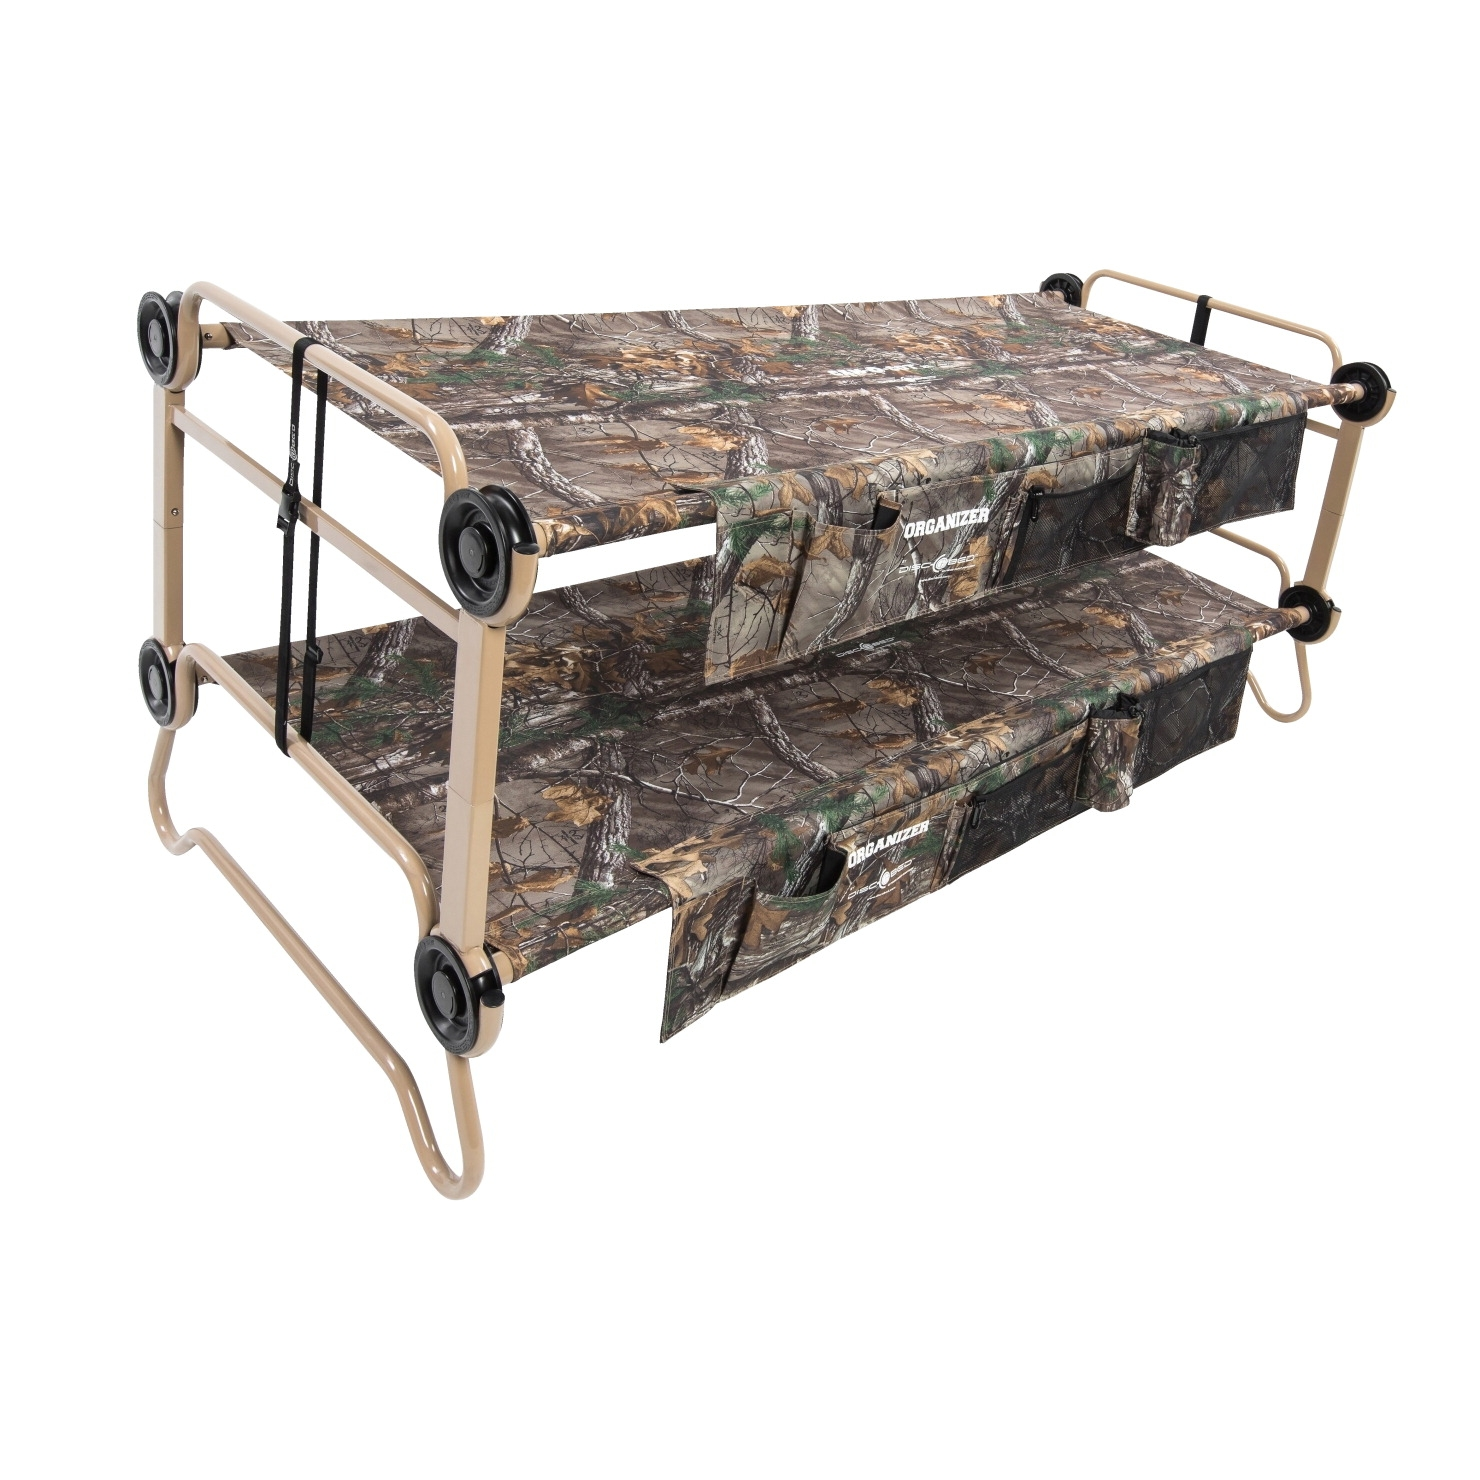 Disc-o-bed Large Cam-o-bunk With 2 Organizers; Realtree Xtra Camouflage - 1527319 - Games Sports Outdoors Themed Cornhole Bags 1527319